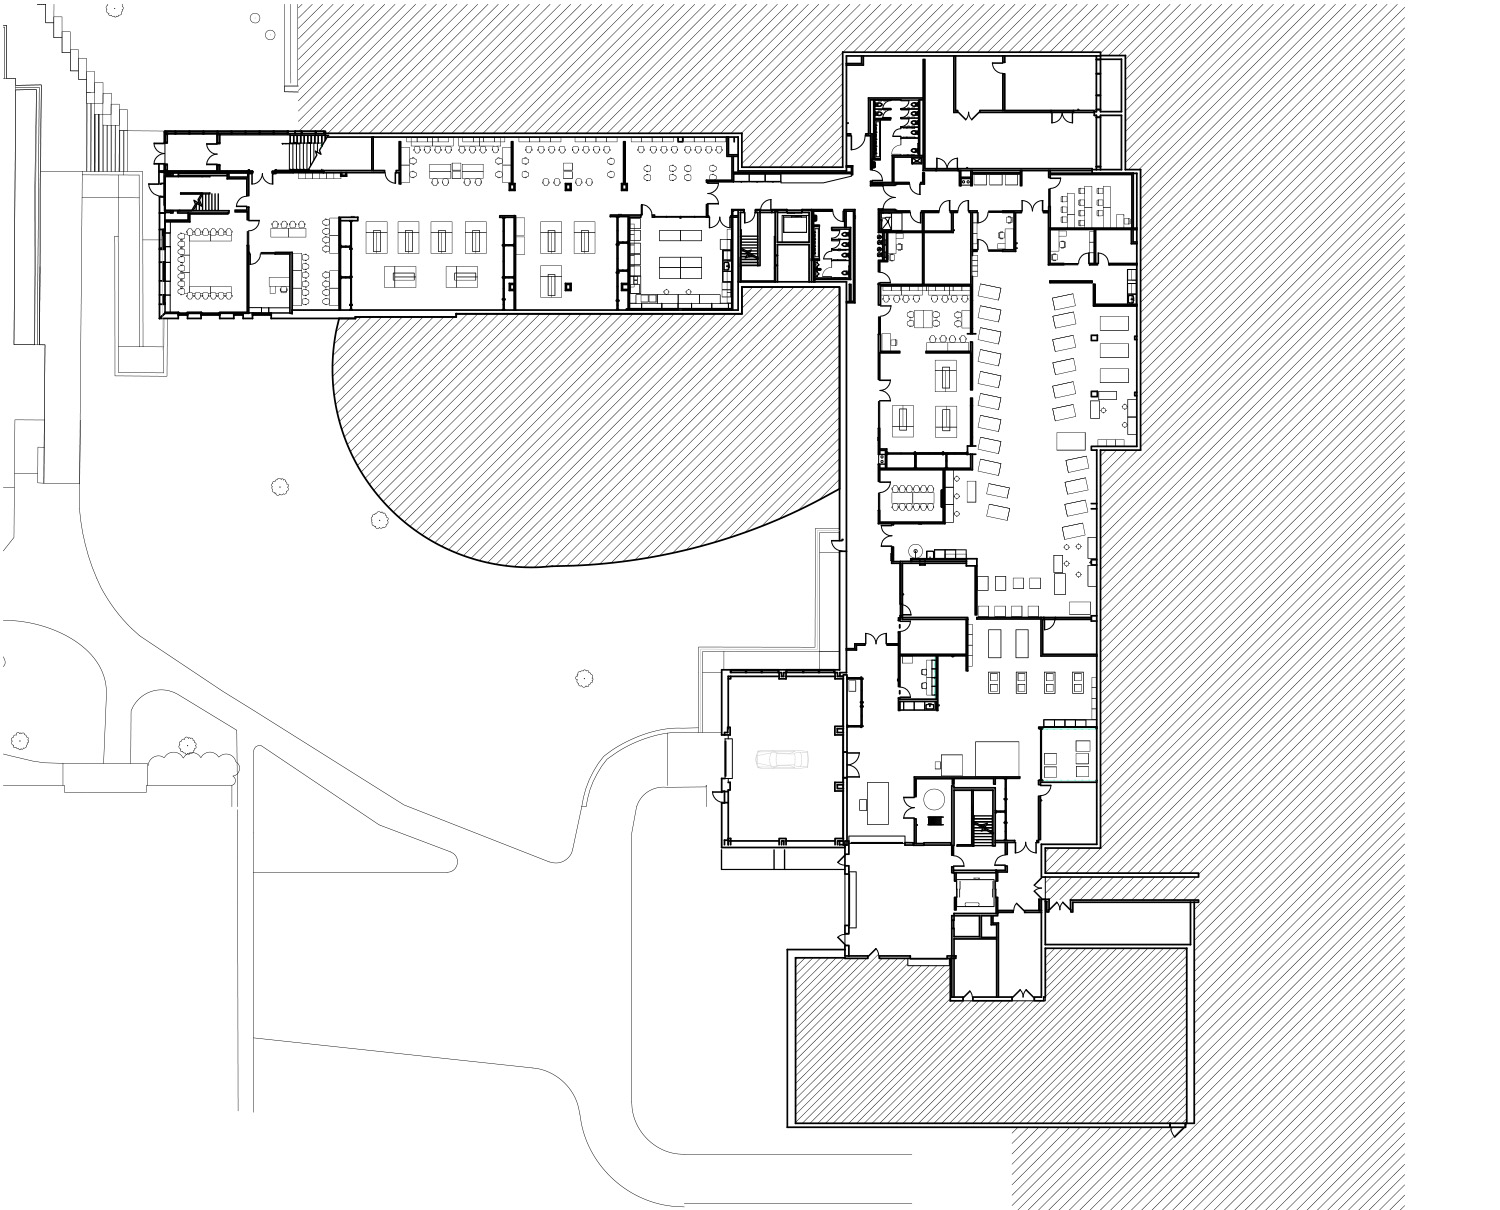 Cornell University Upson Hall: Basement Floor Plan LTL Architects}